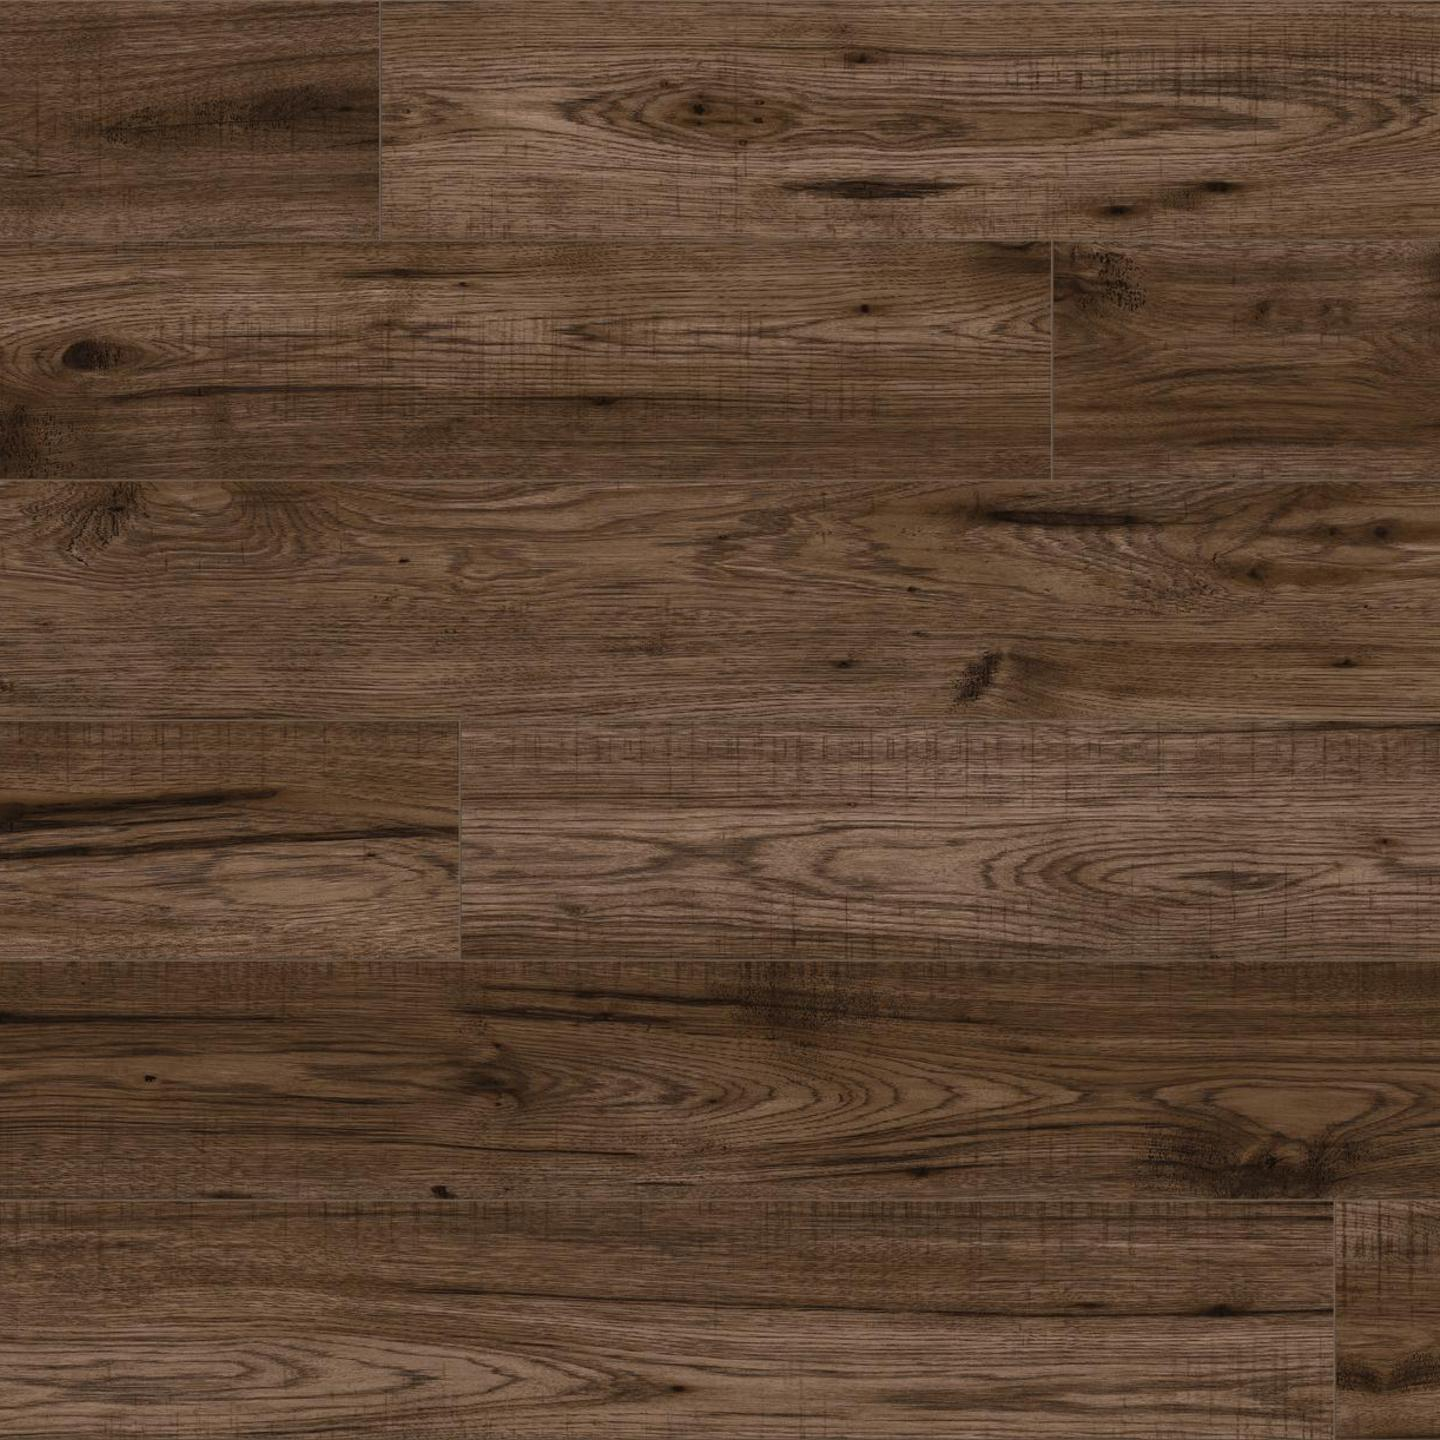 Verlegte Fläche Laminatboden Natural Touch 34029 Hickory Valley SQ